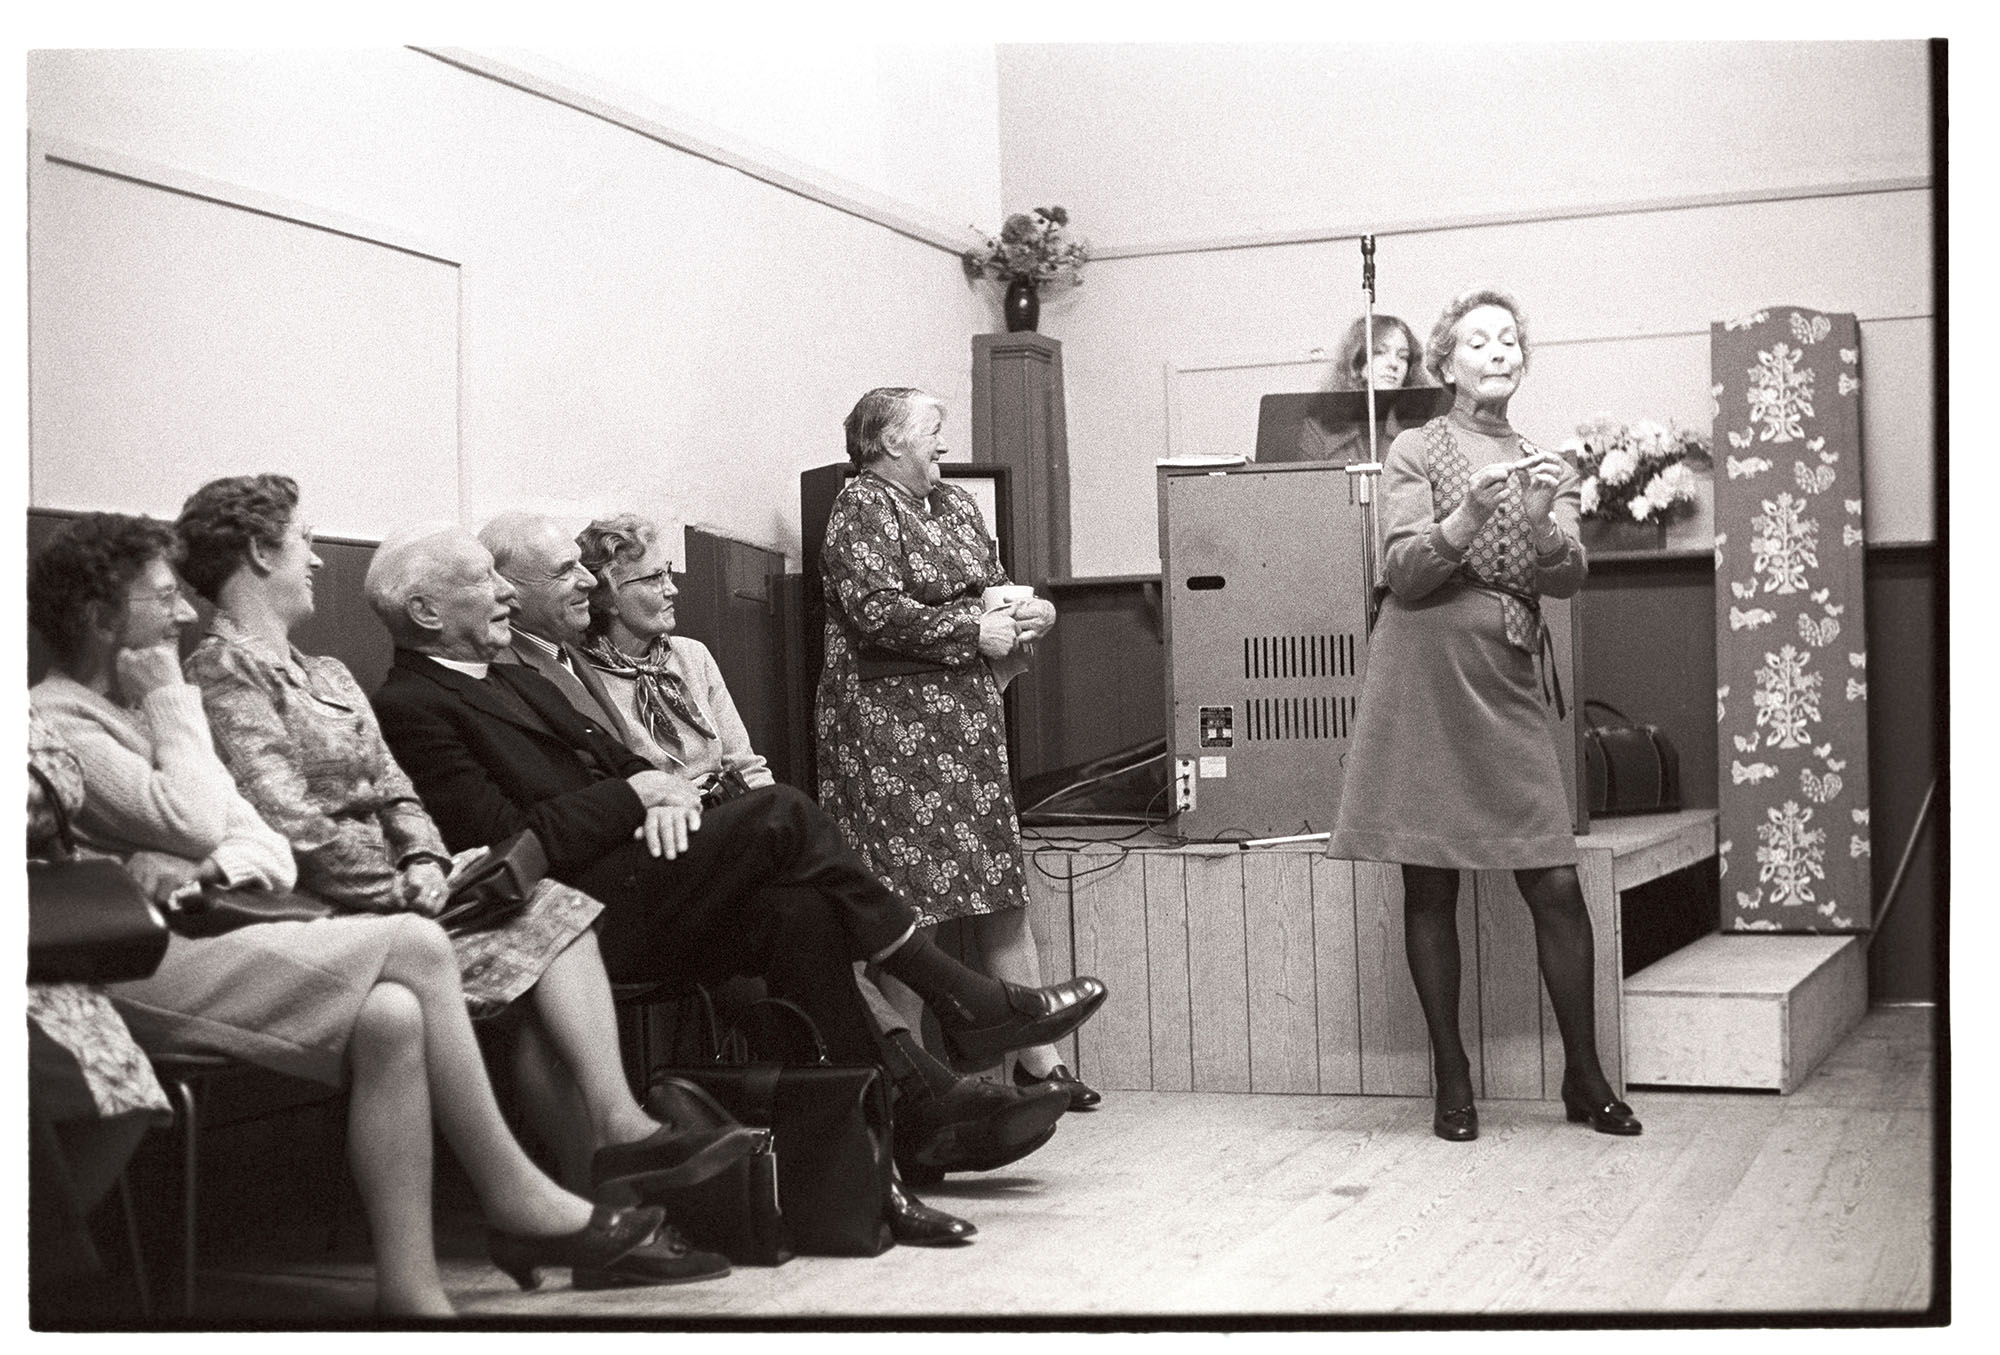 Entertainment at Harvest Supper in village hall.<br /> [Reverend Wallington and other people watching Mrs Wallington perform a mime to entertain people at the Harvest Supper at Roborough Village Hall. A woman is stood up laughing by a small stage.]